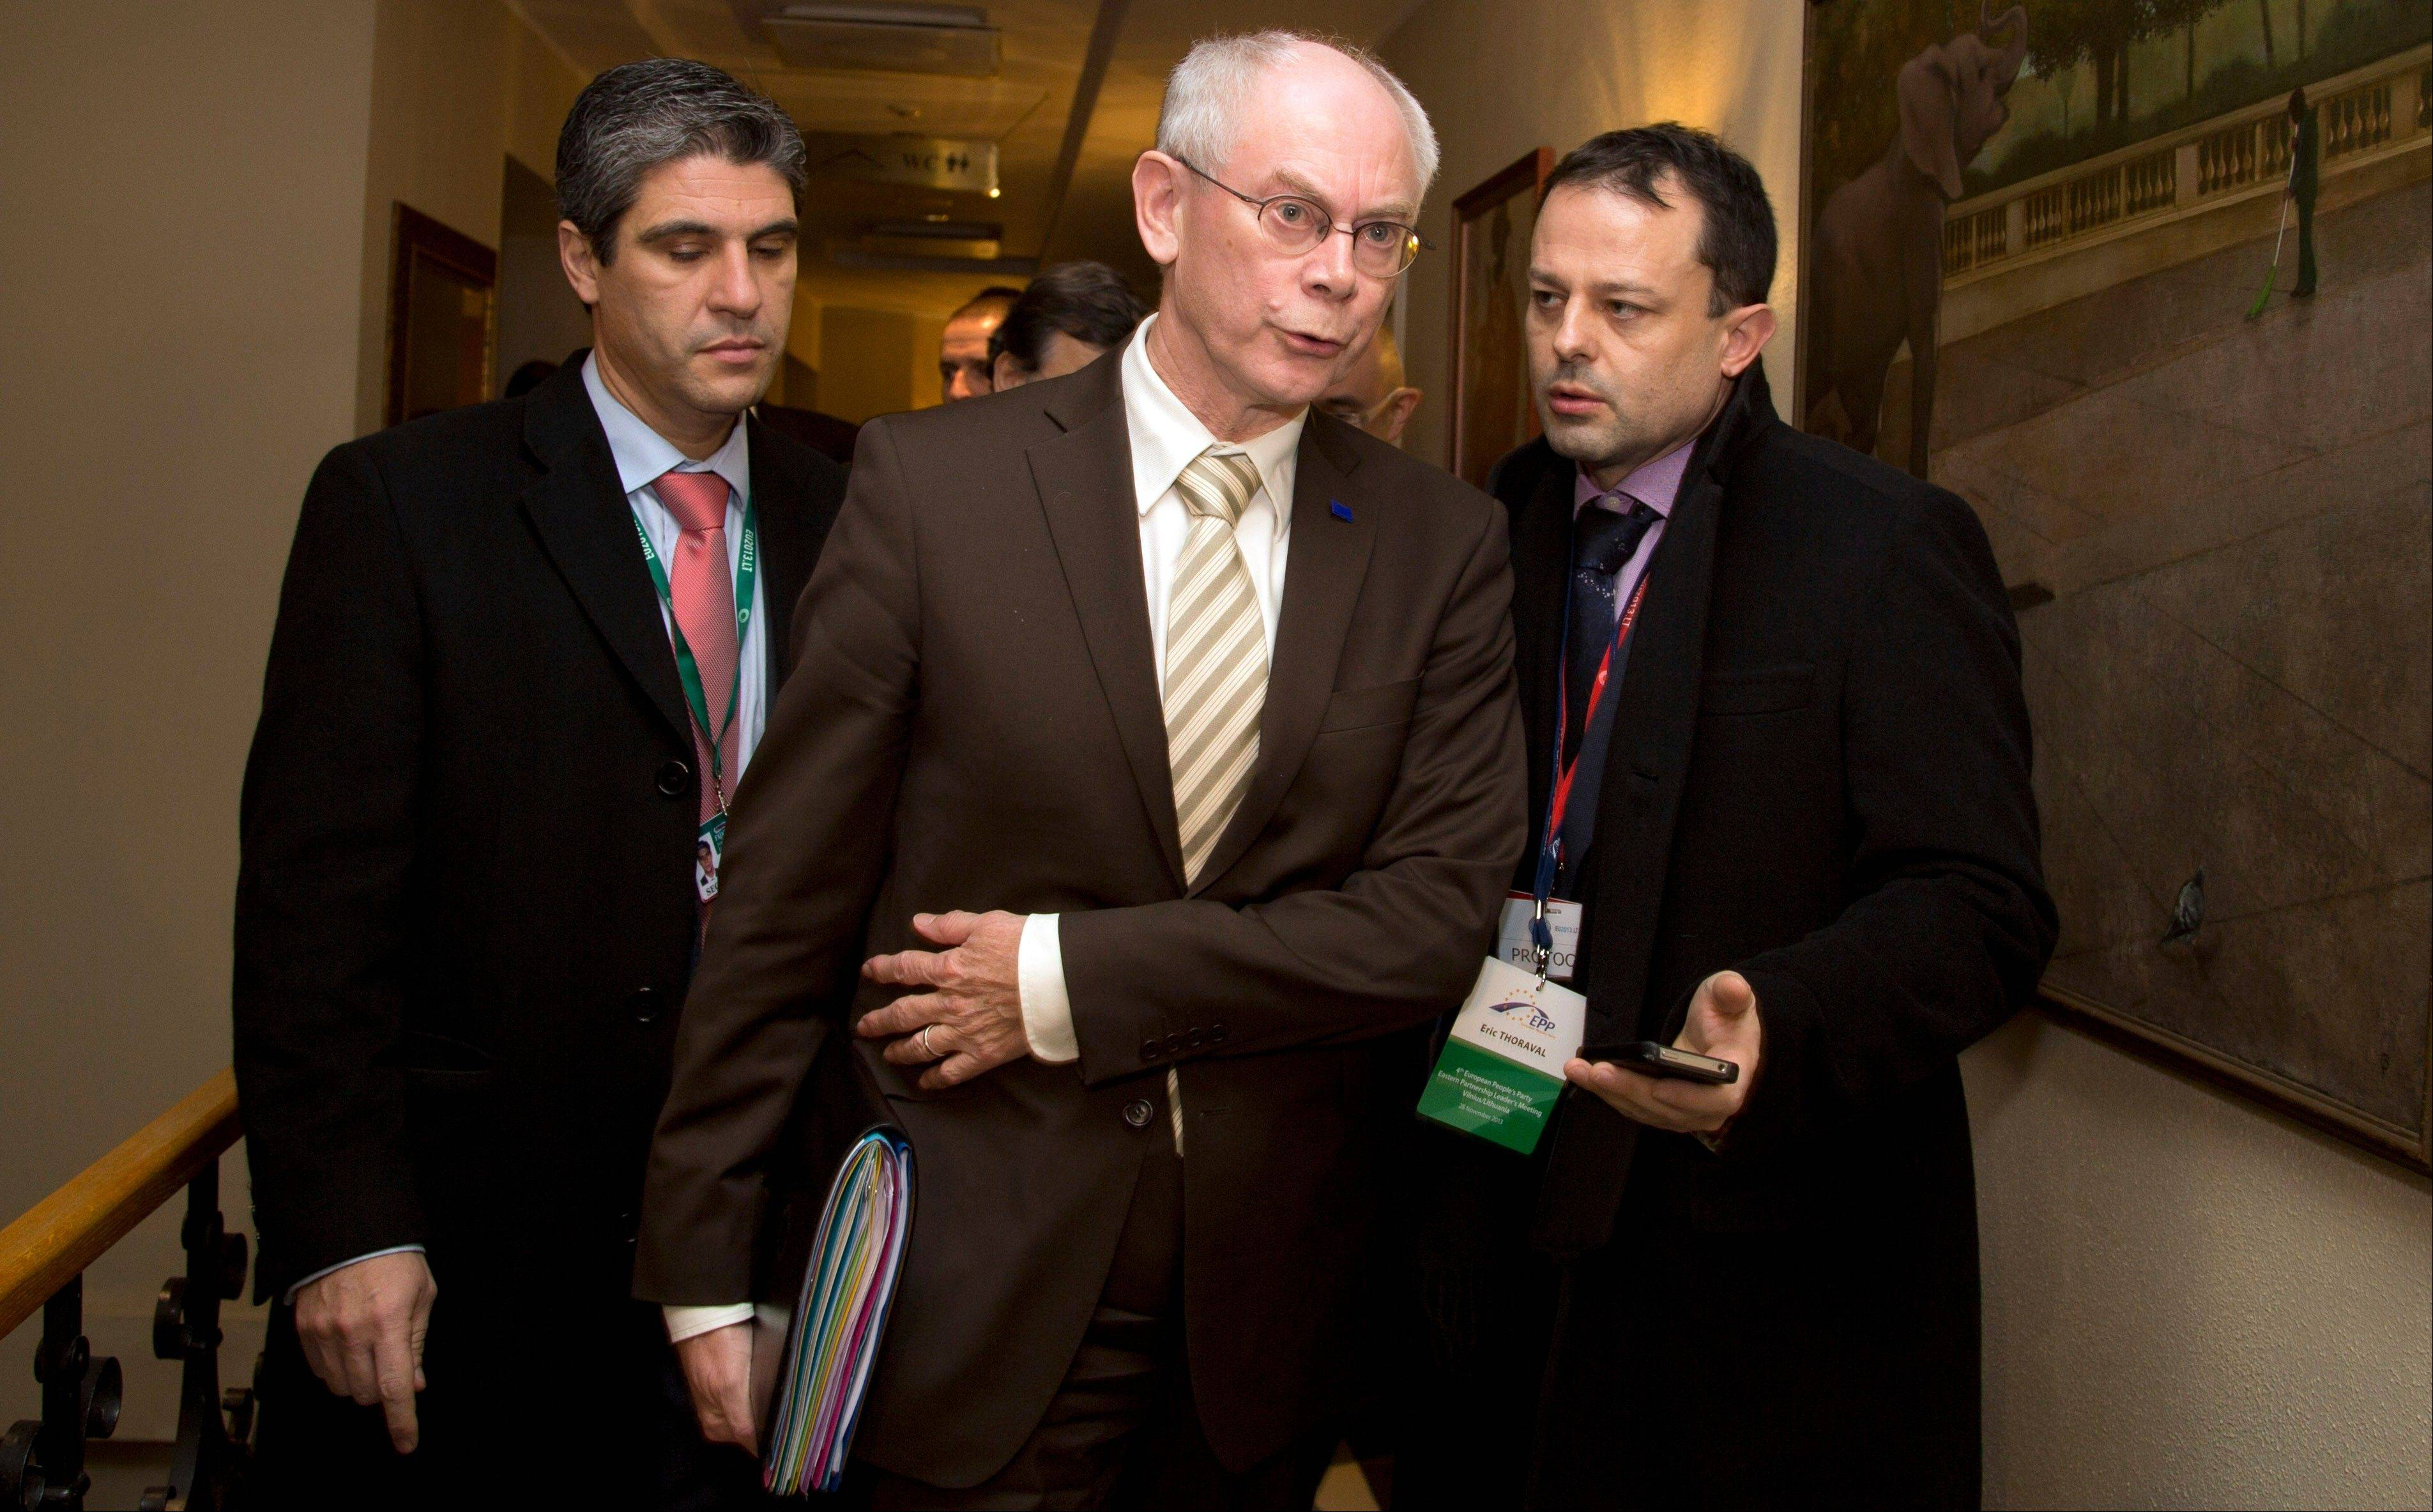 European Council President Herman Van Rompuy, center, leaves after a meeting of the EPP, ahead of an Eastern Partnership Summit in Vilnius on Thursday. European Union leaders sought Thursday to revive a stalled agreement with Ukraine.